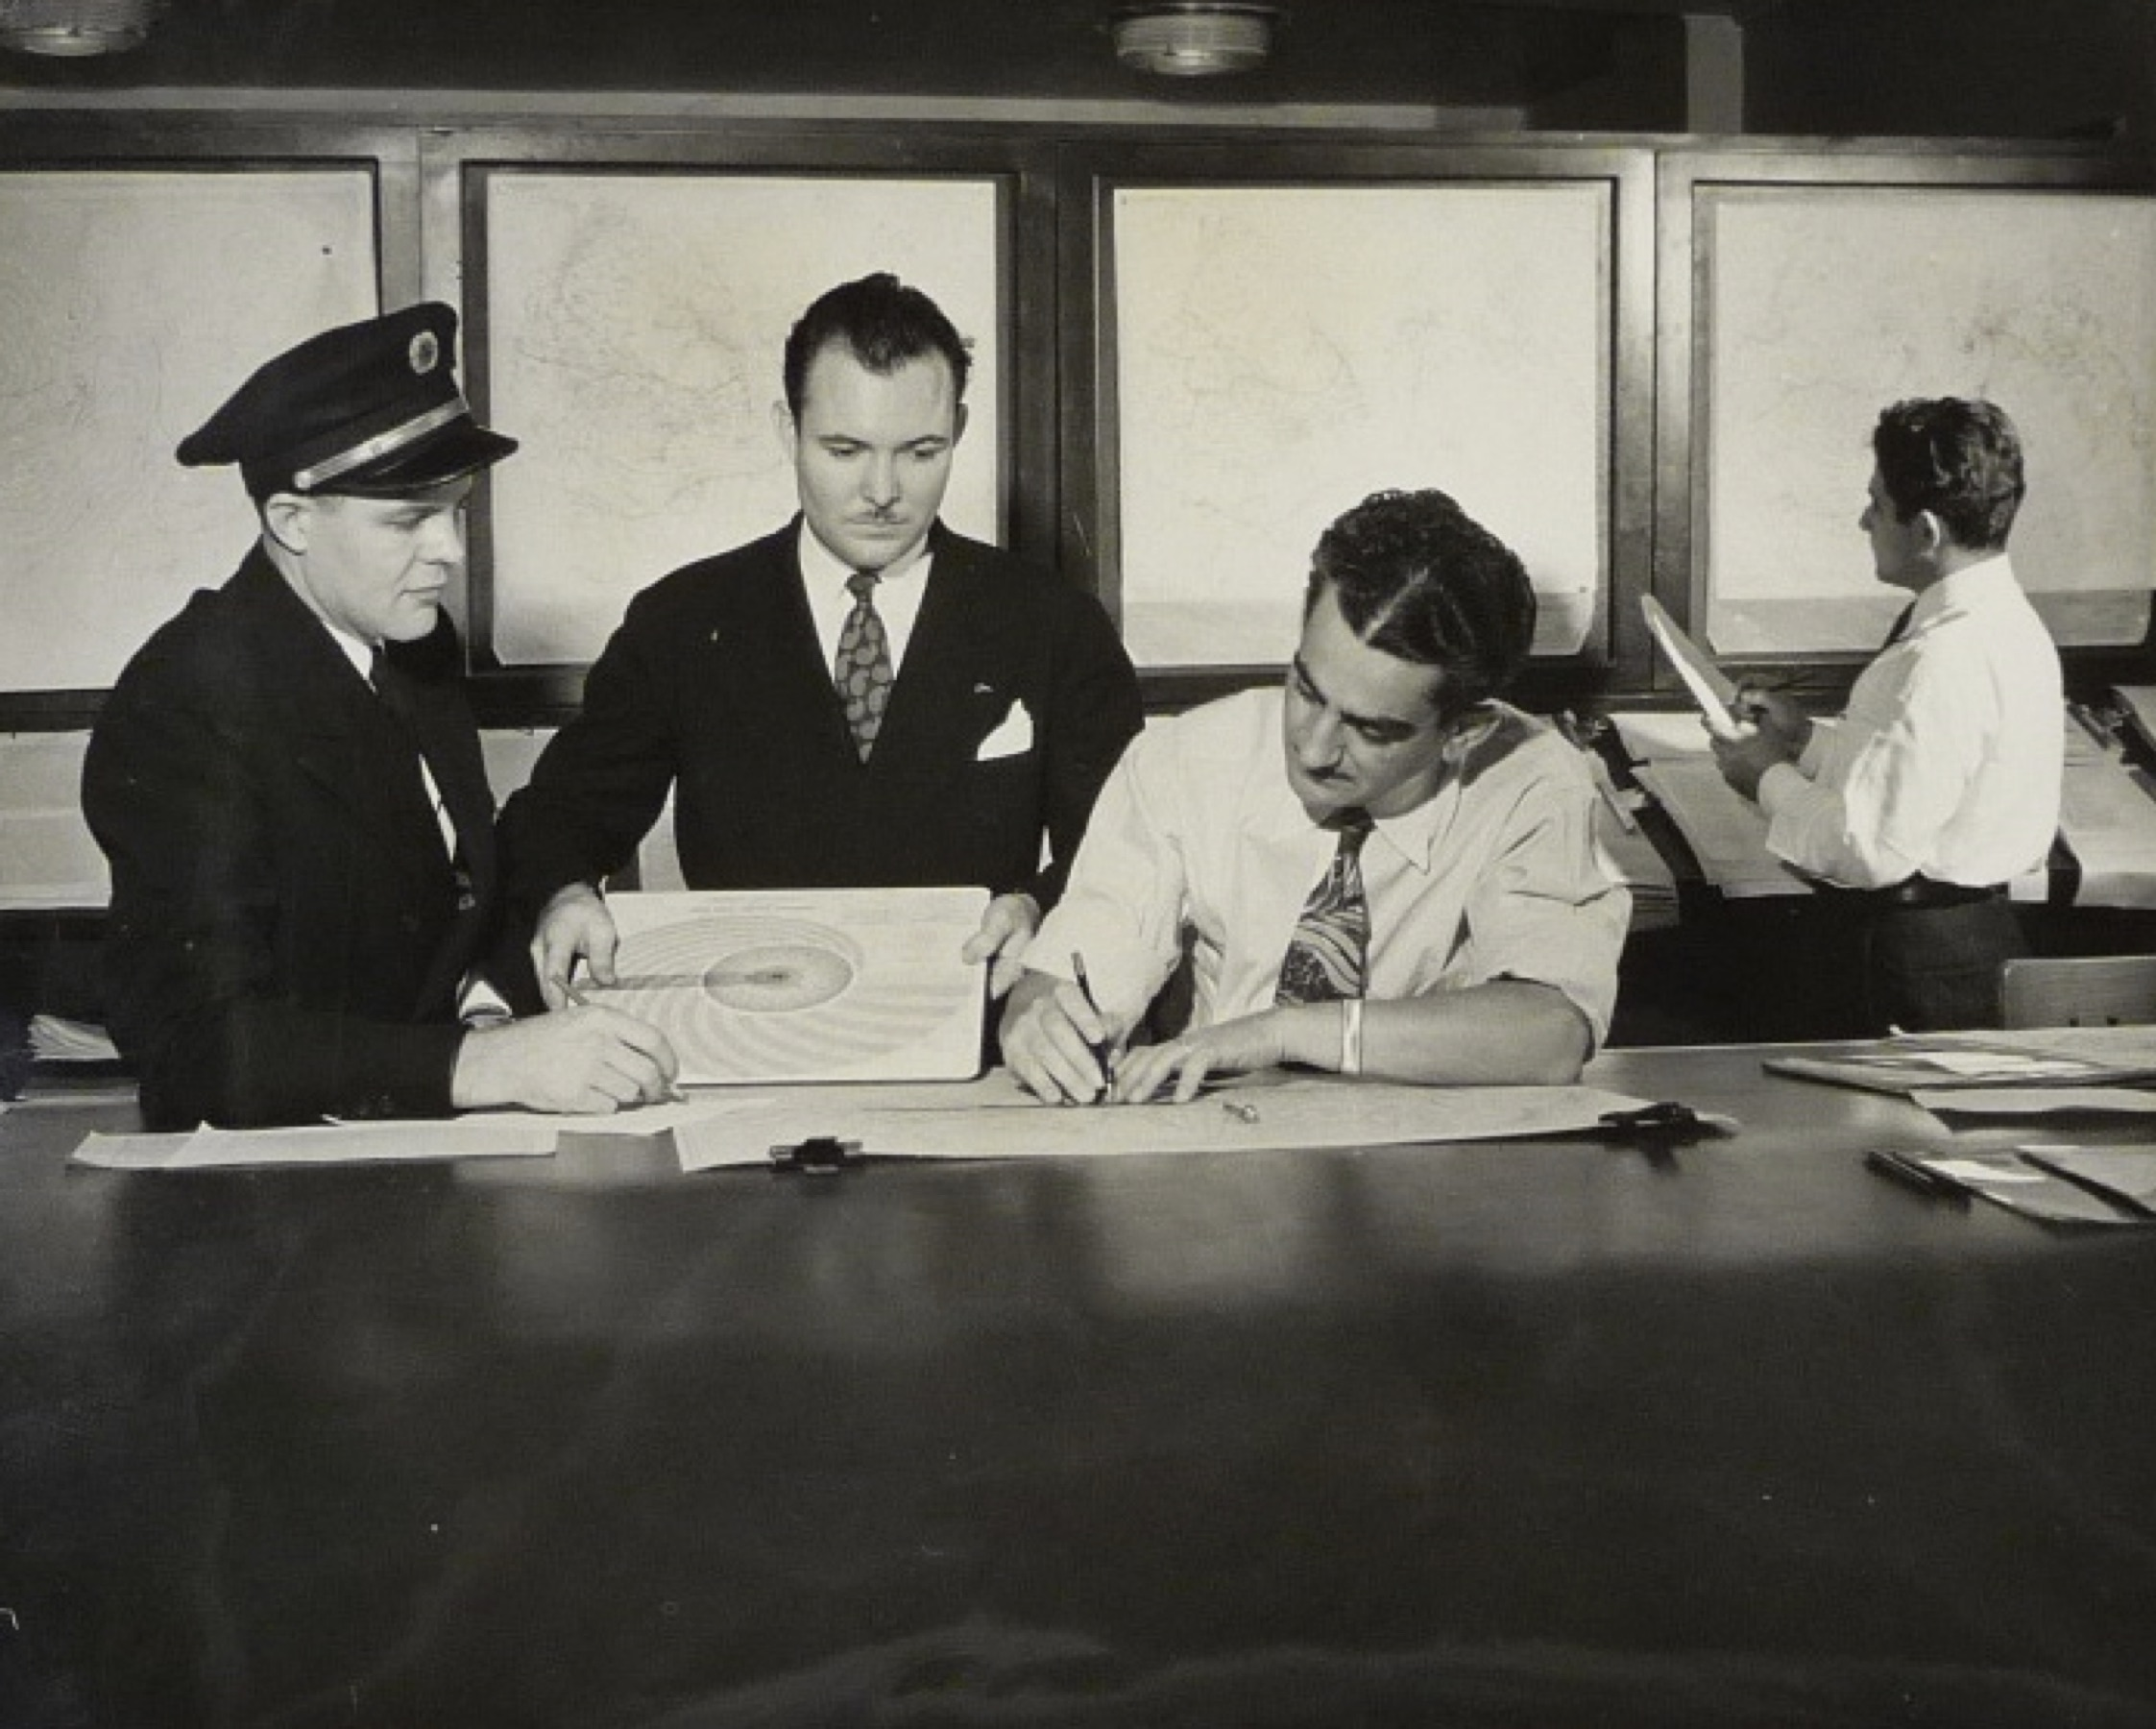 Unnamed Pan Am meteorologist (foreground right) briefs a pilot and dispatcher prior in a staged publicity photograph, c. 1939. Pan Am Airways, Inc. Records, Collection 341, Series I, Box 41 Folder 23, 'Meteorology Brochures.' Courtesy of Special Collections, University of Miami Libraries, Coral Gables, Florida.